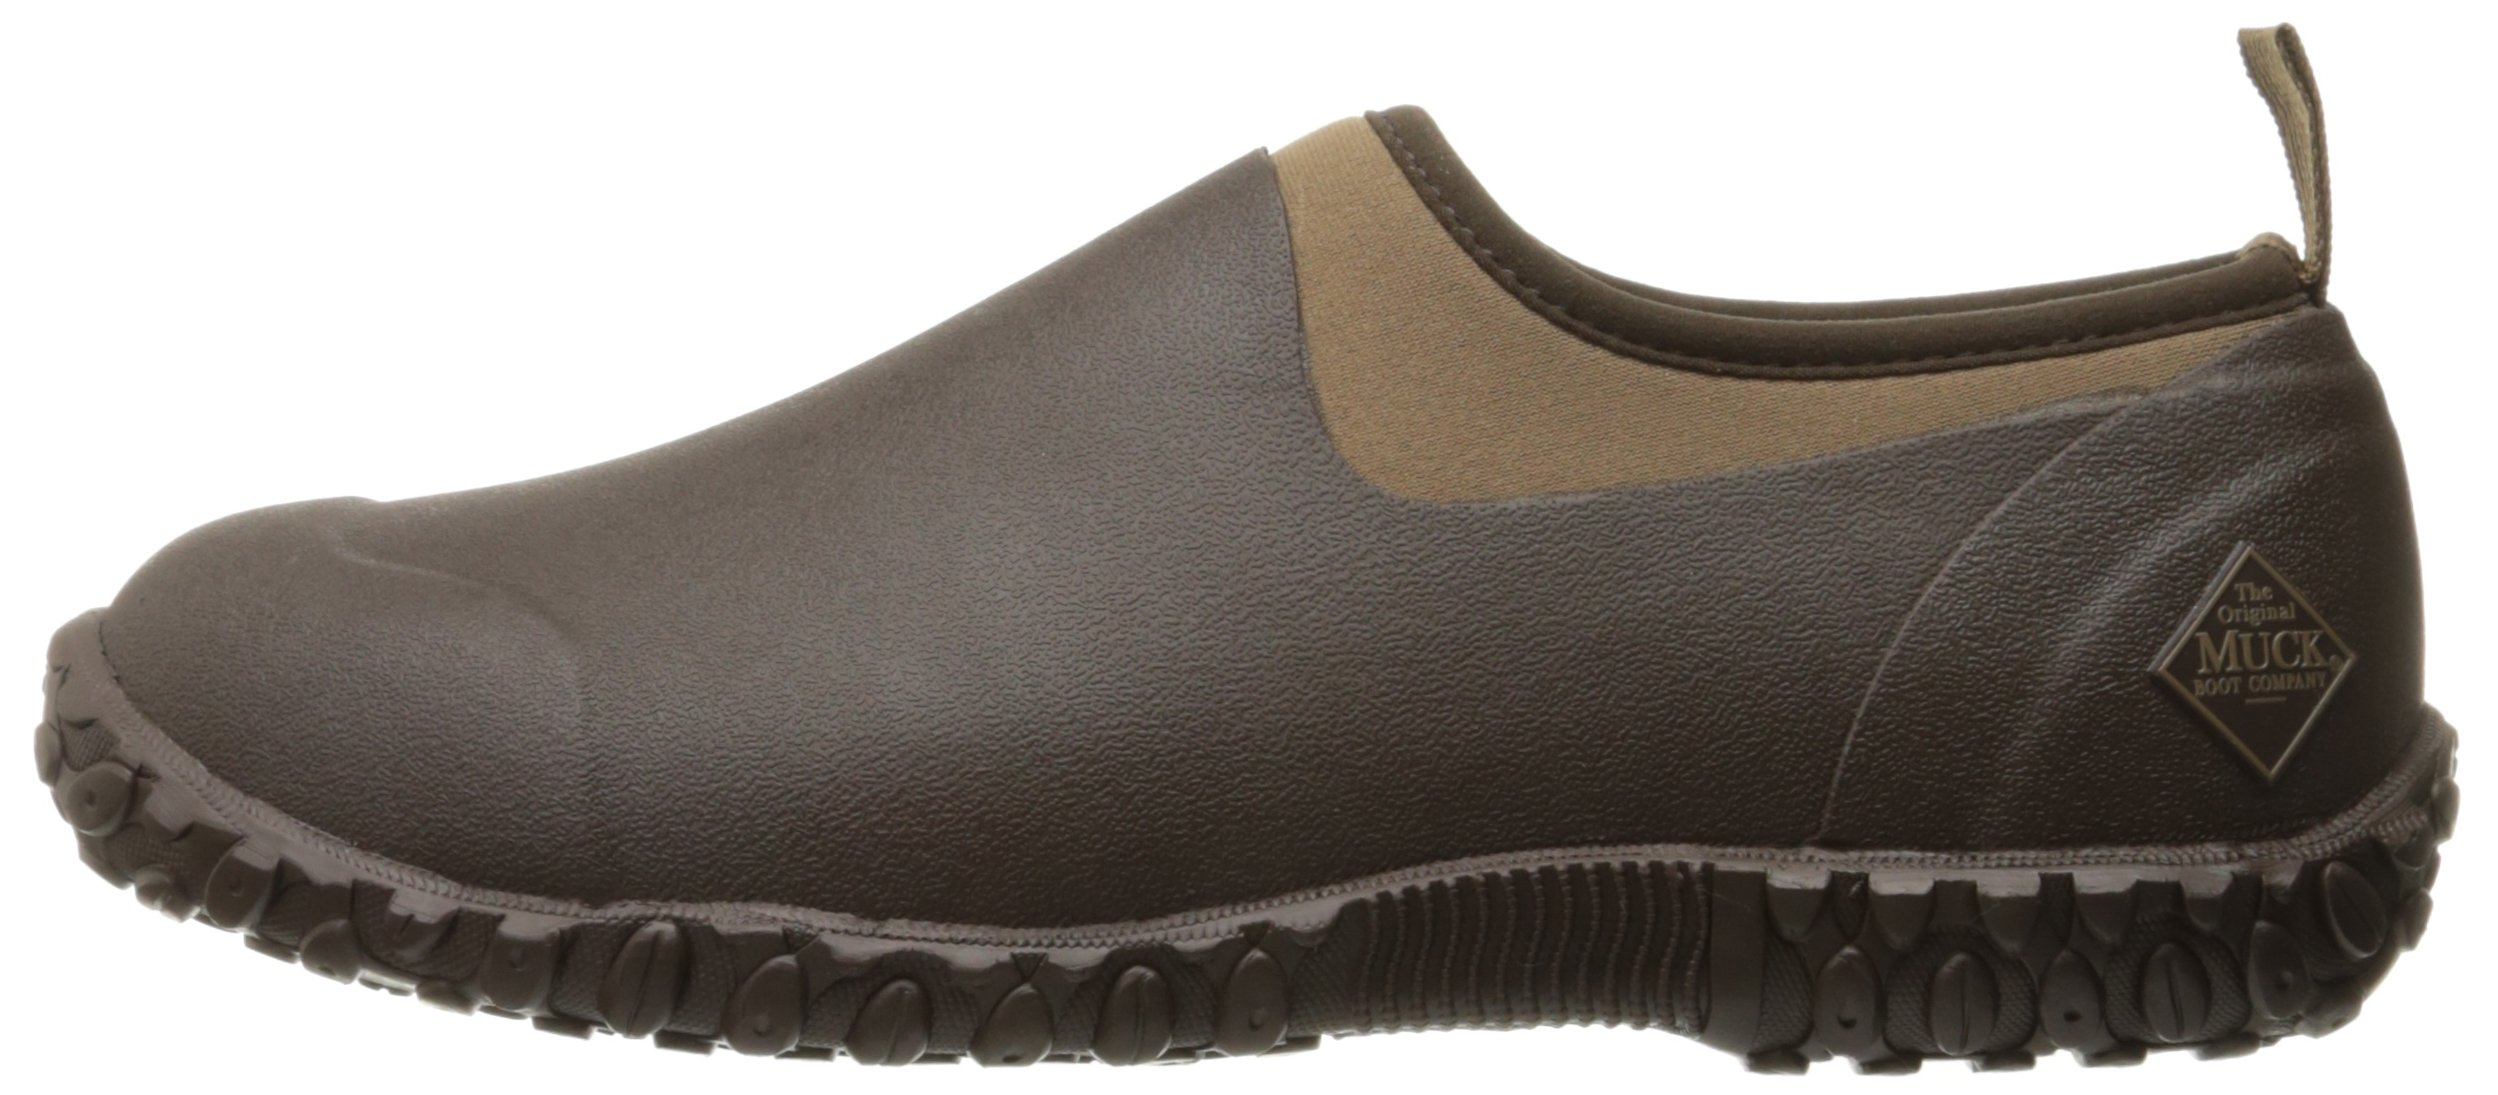 Muckster ll Men's Rubber Garden Shoes,Black/Otter,8 US/8-8.5 M US by Muck Boot (Image #5)